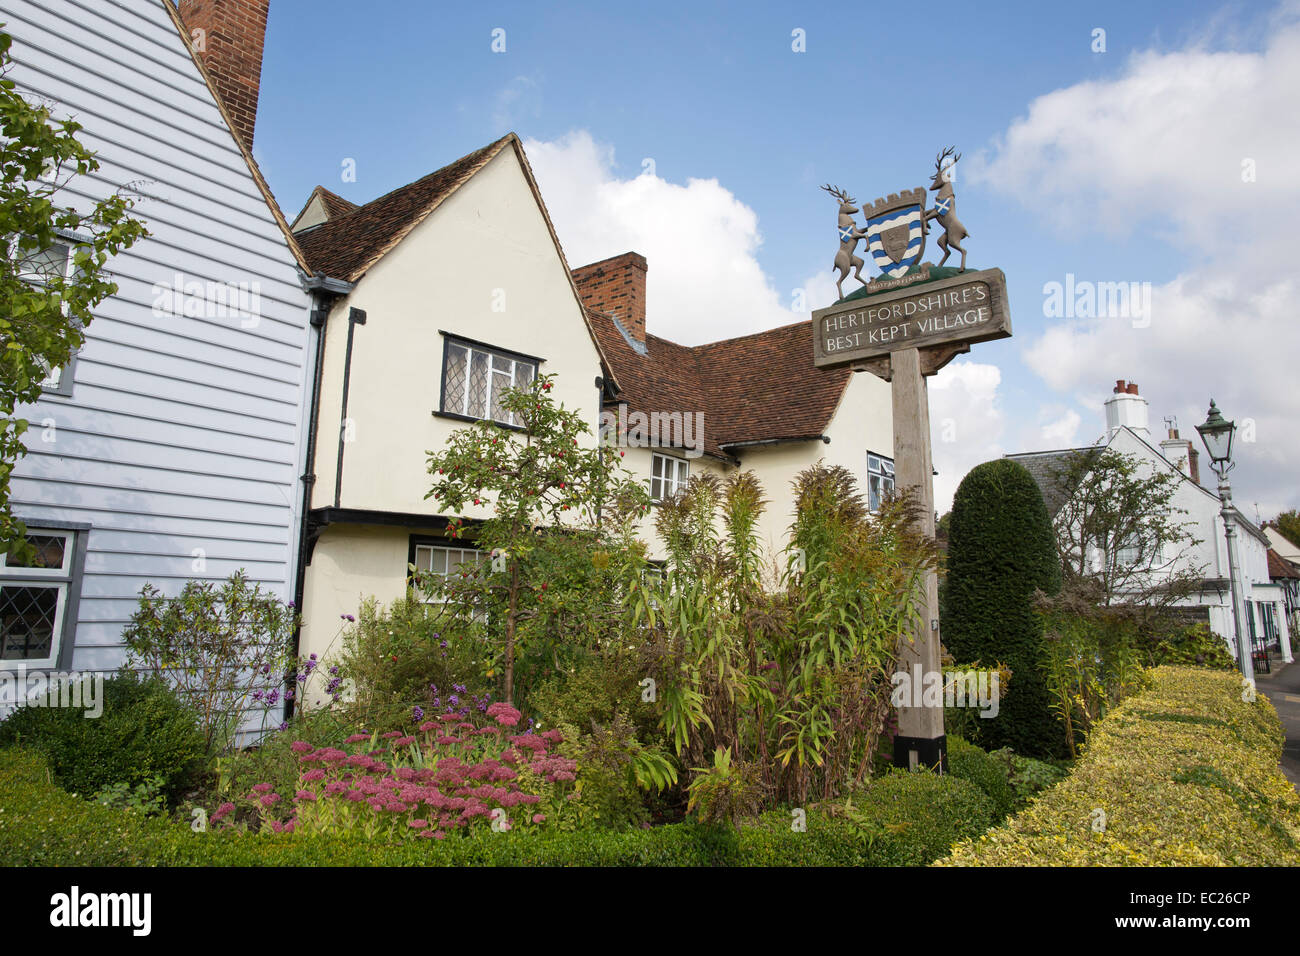 Forge Museum, Much Hadham, Herfordshire, England, UK - Stock Image